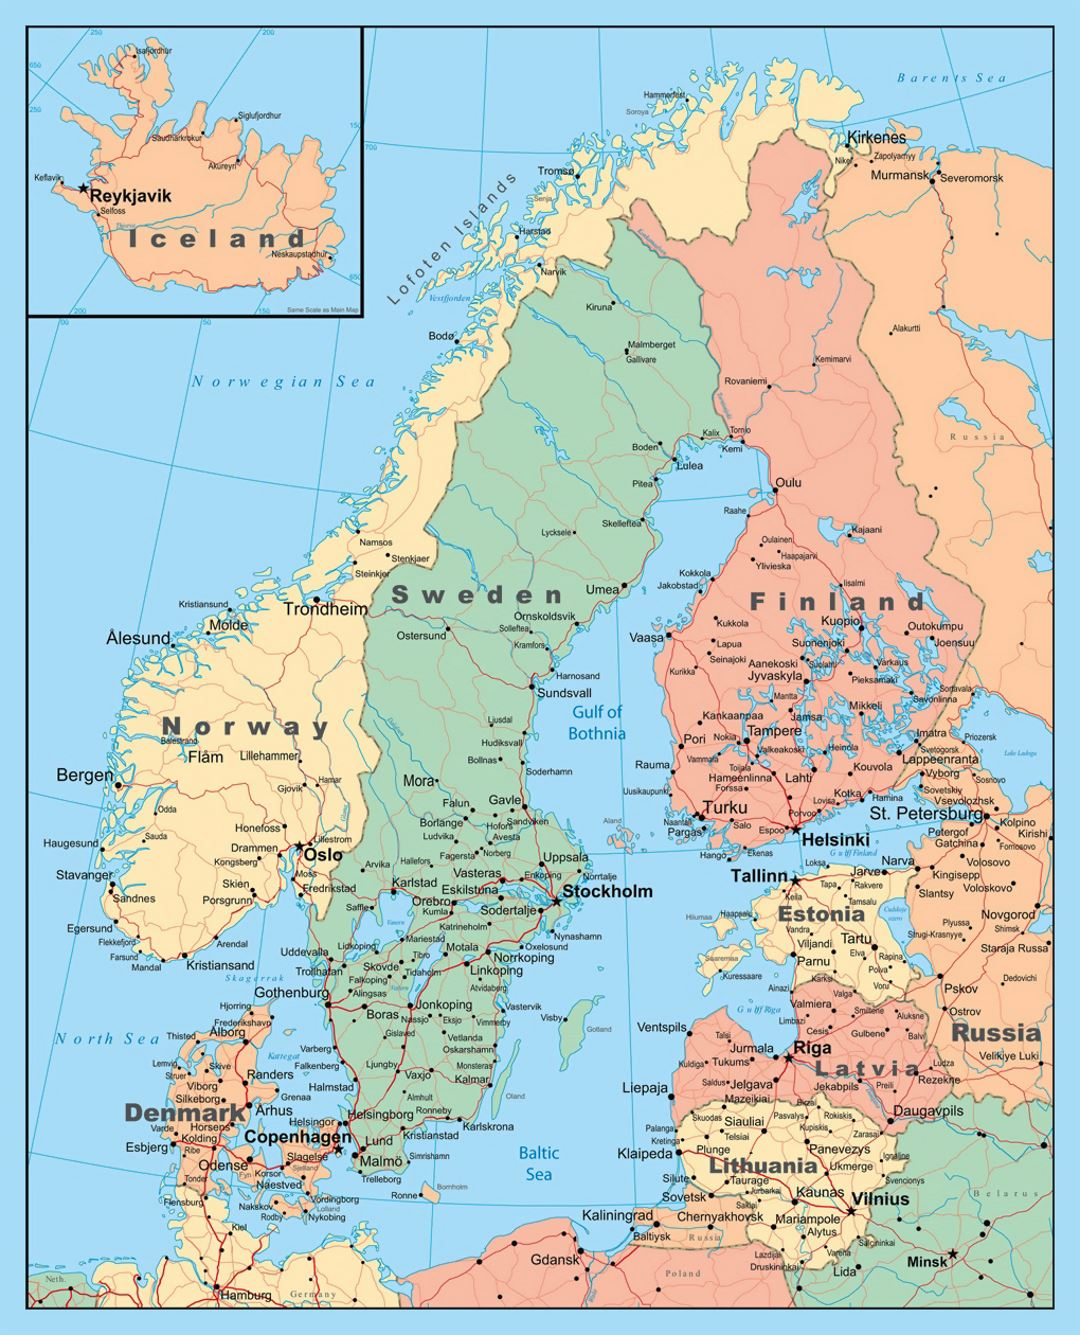 Detailed Political Map Of Scandinavia Baltic And Scandinavia - Europe map scandinavia